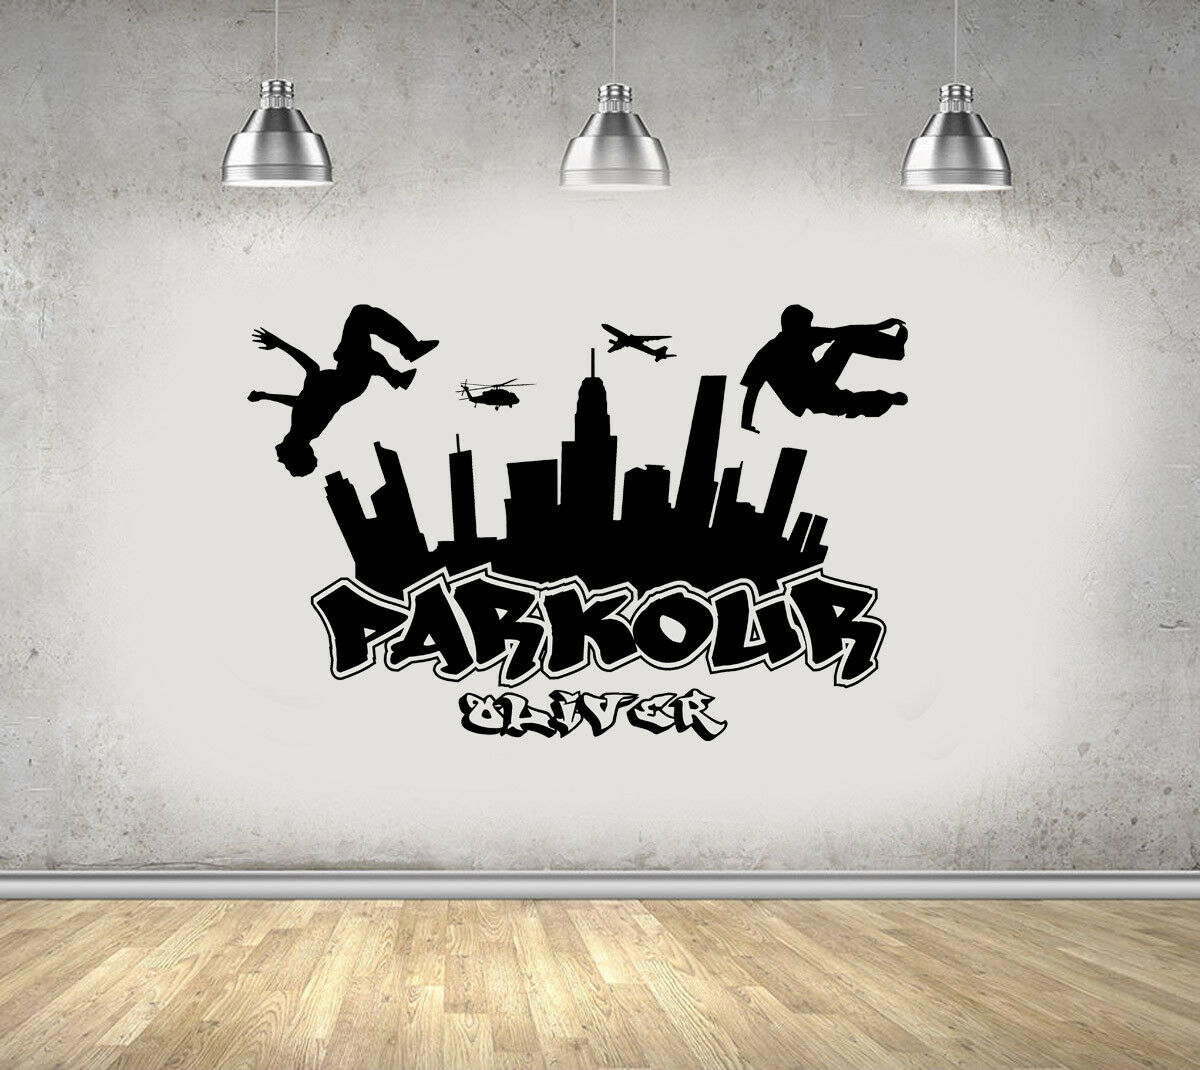 Black 14 x 28 14 Inches X 28 Inches Color Design with Vinyl US V JER 2780 2 Top Selling Decals Give Thanks Wall Art Size